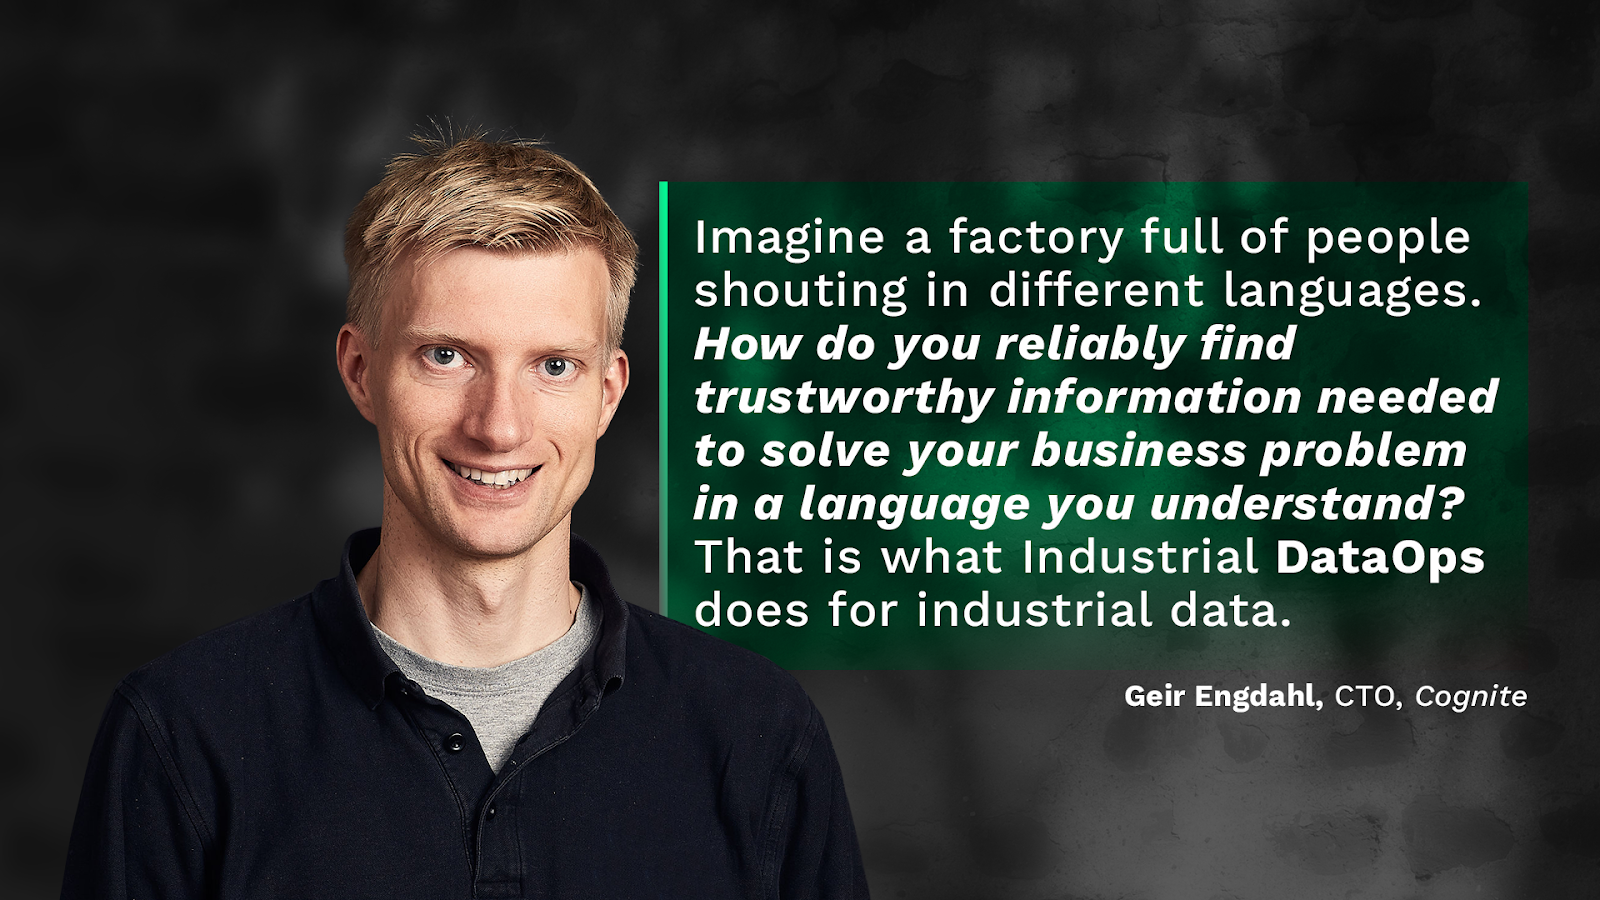 Cognite co-founder and CTO Geir Engdahl